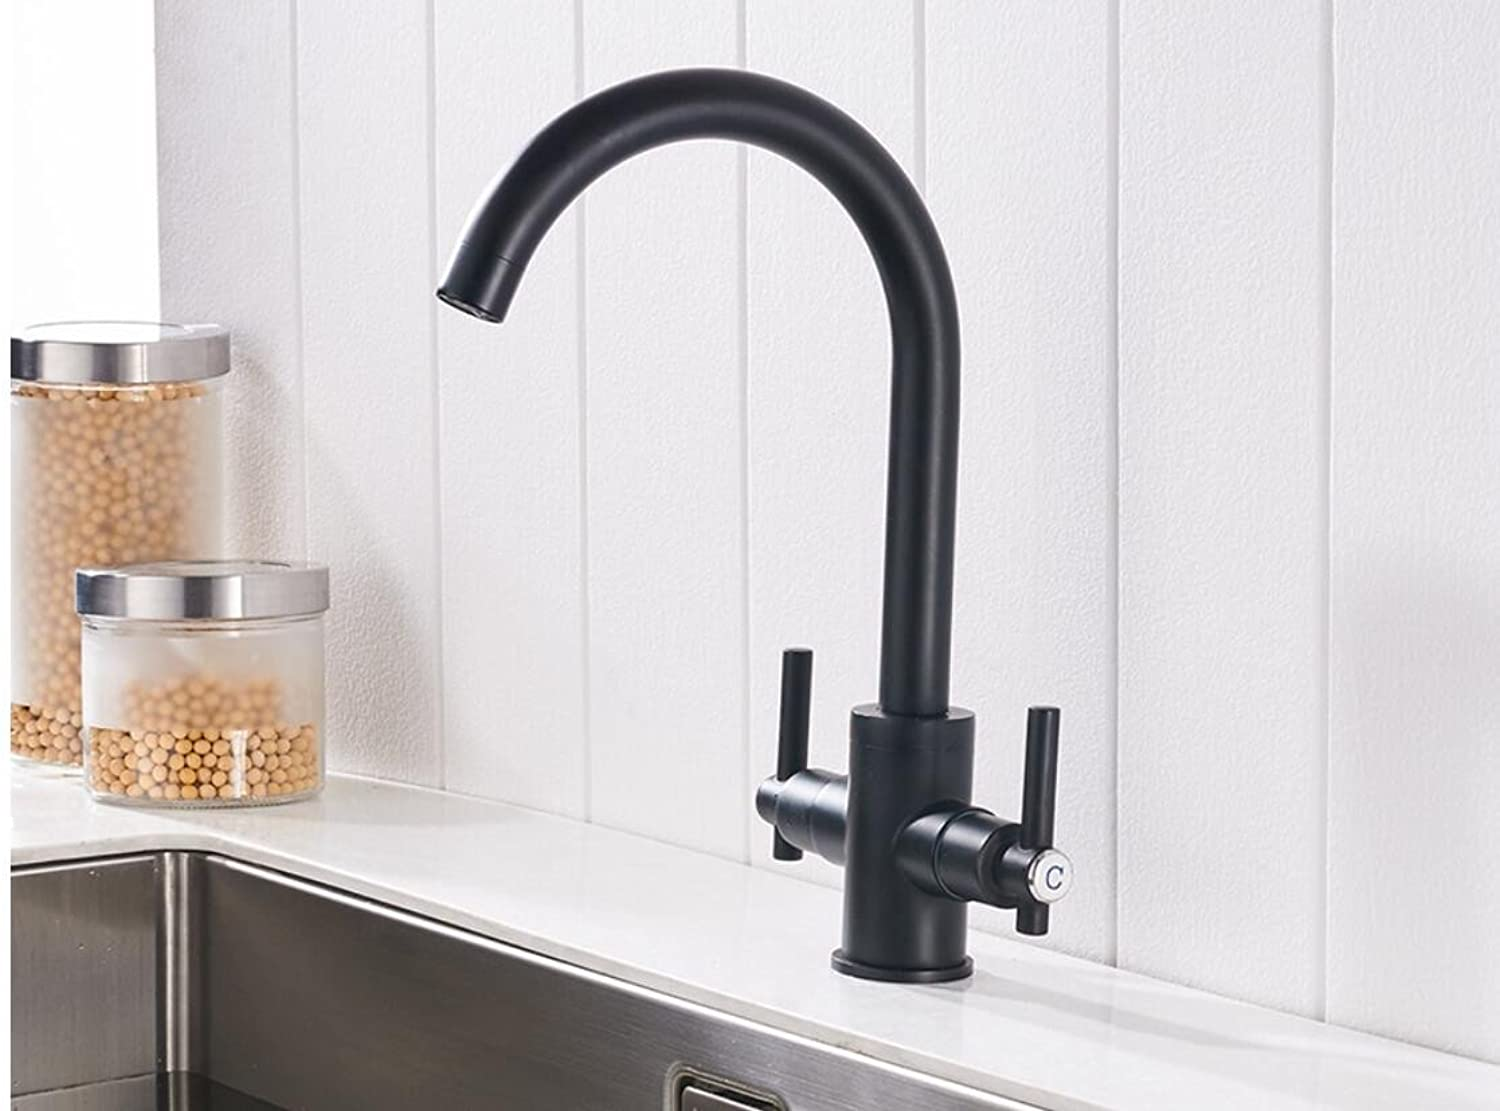 Mkkwp Two-Handle Faucet Black Kitchen Hot and Cold Sink Faucet Brass redatable Tap Kitchen Faucet